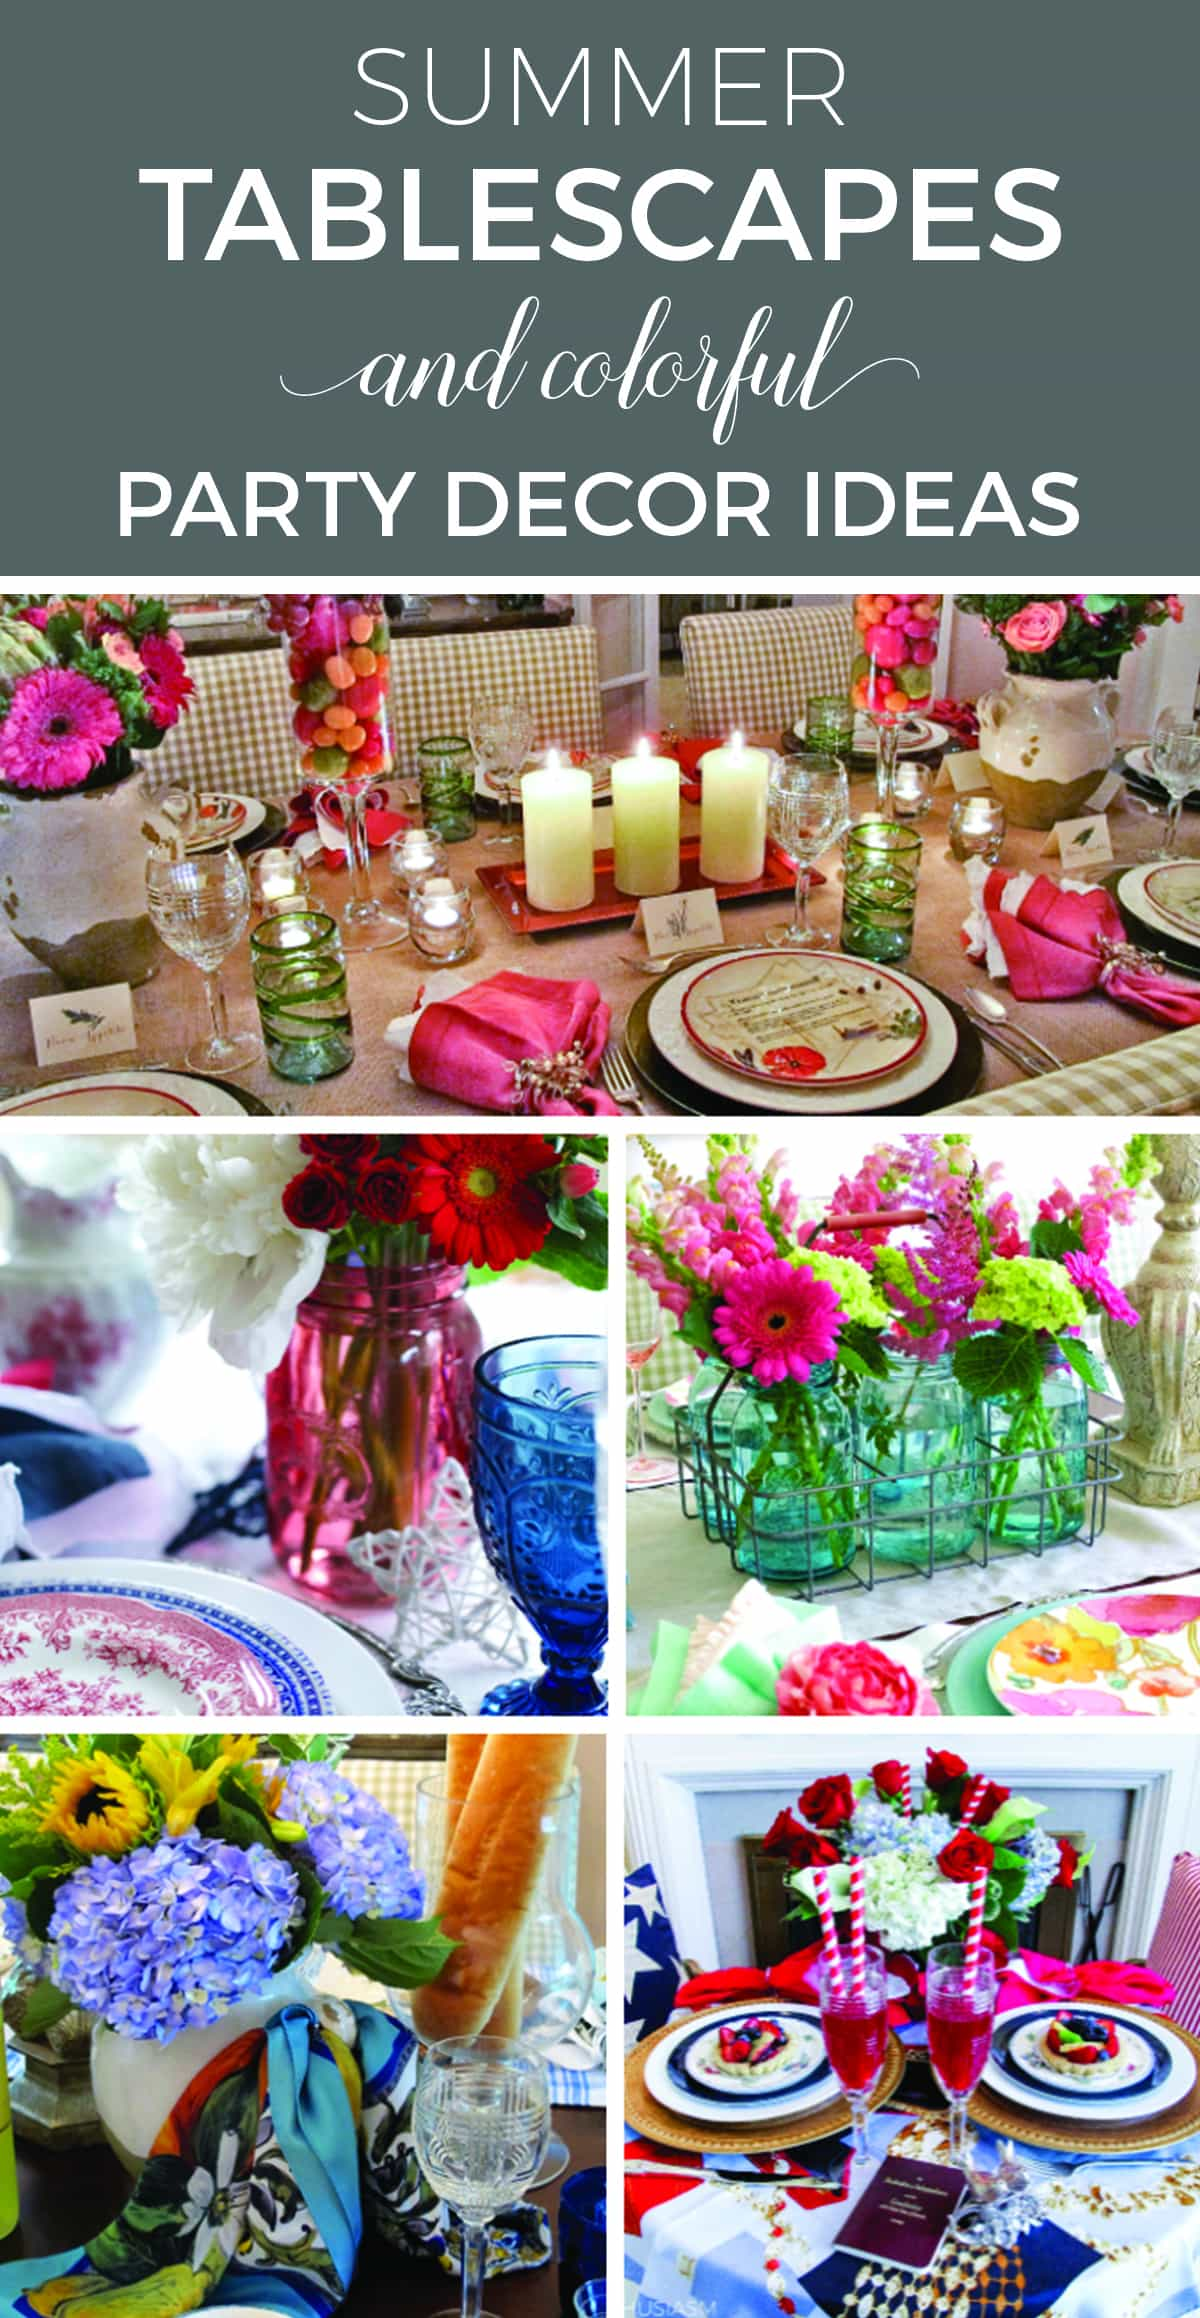 Summer Party Decorations: 6 Colorful Tablescape Ideas - designthusiasm.com